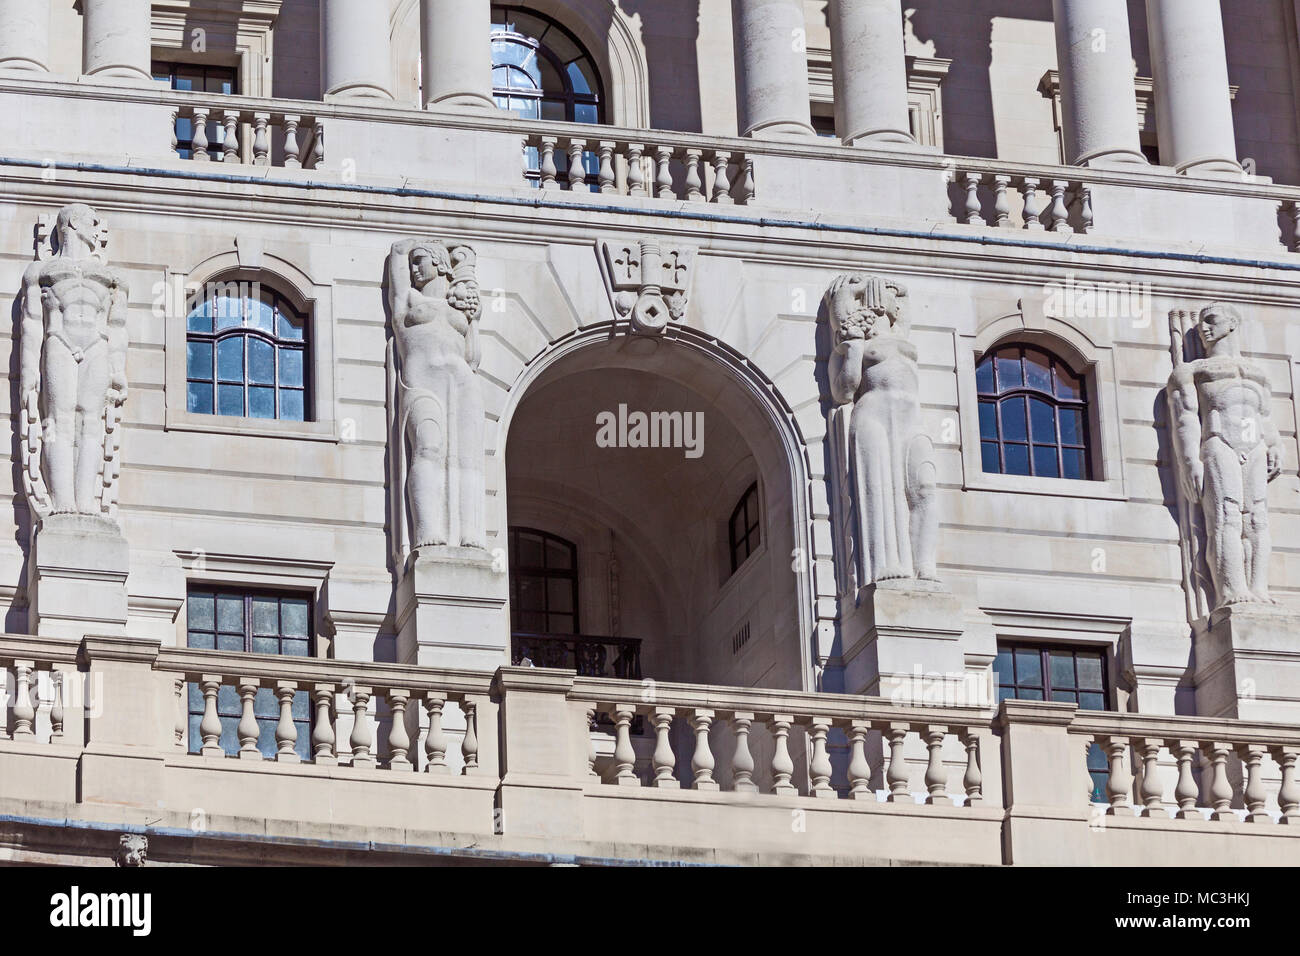 City of London.  Sculpted figures by Sir Charles Wheeler on the facade of the Bank of England in Threadneedle Street - Stock Image